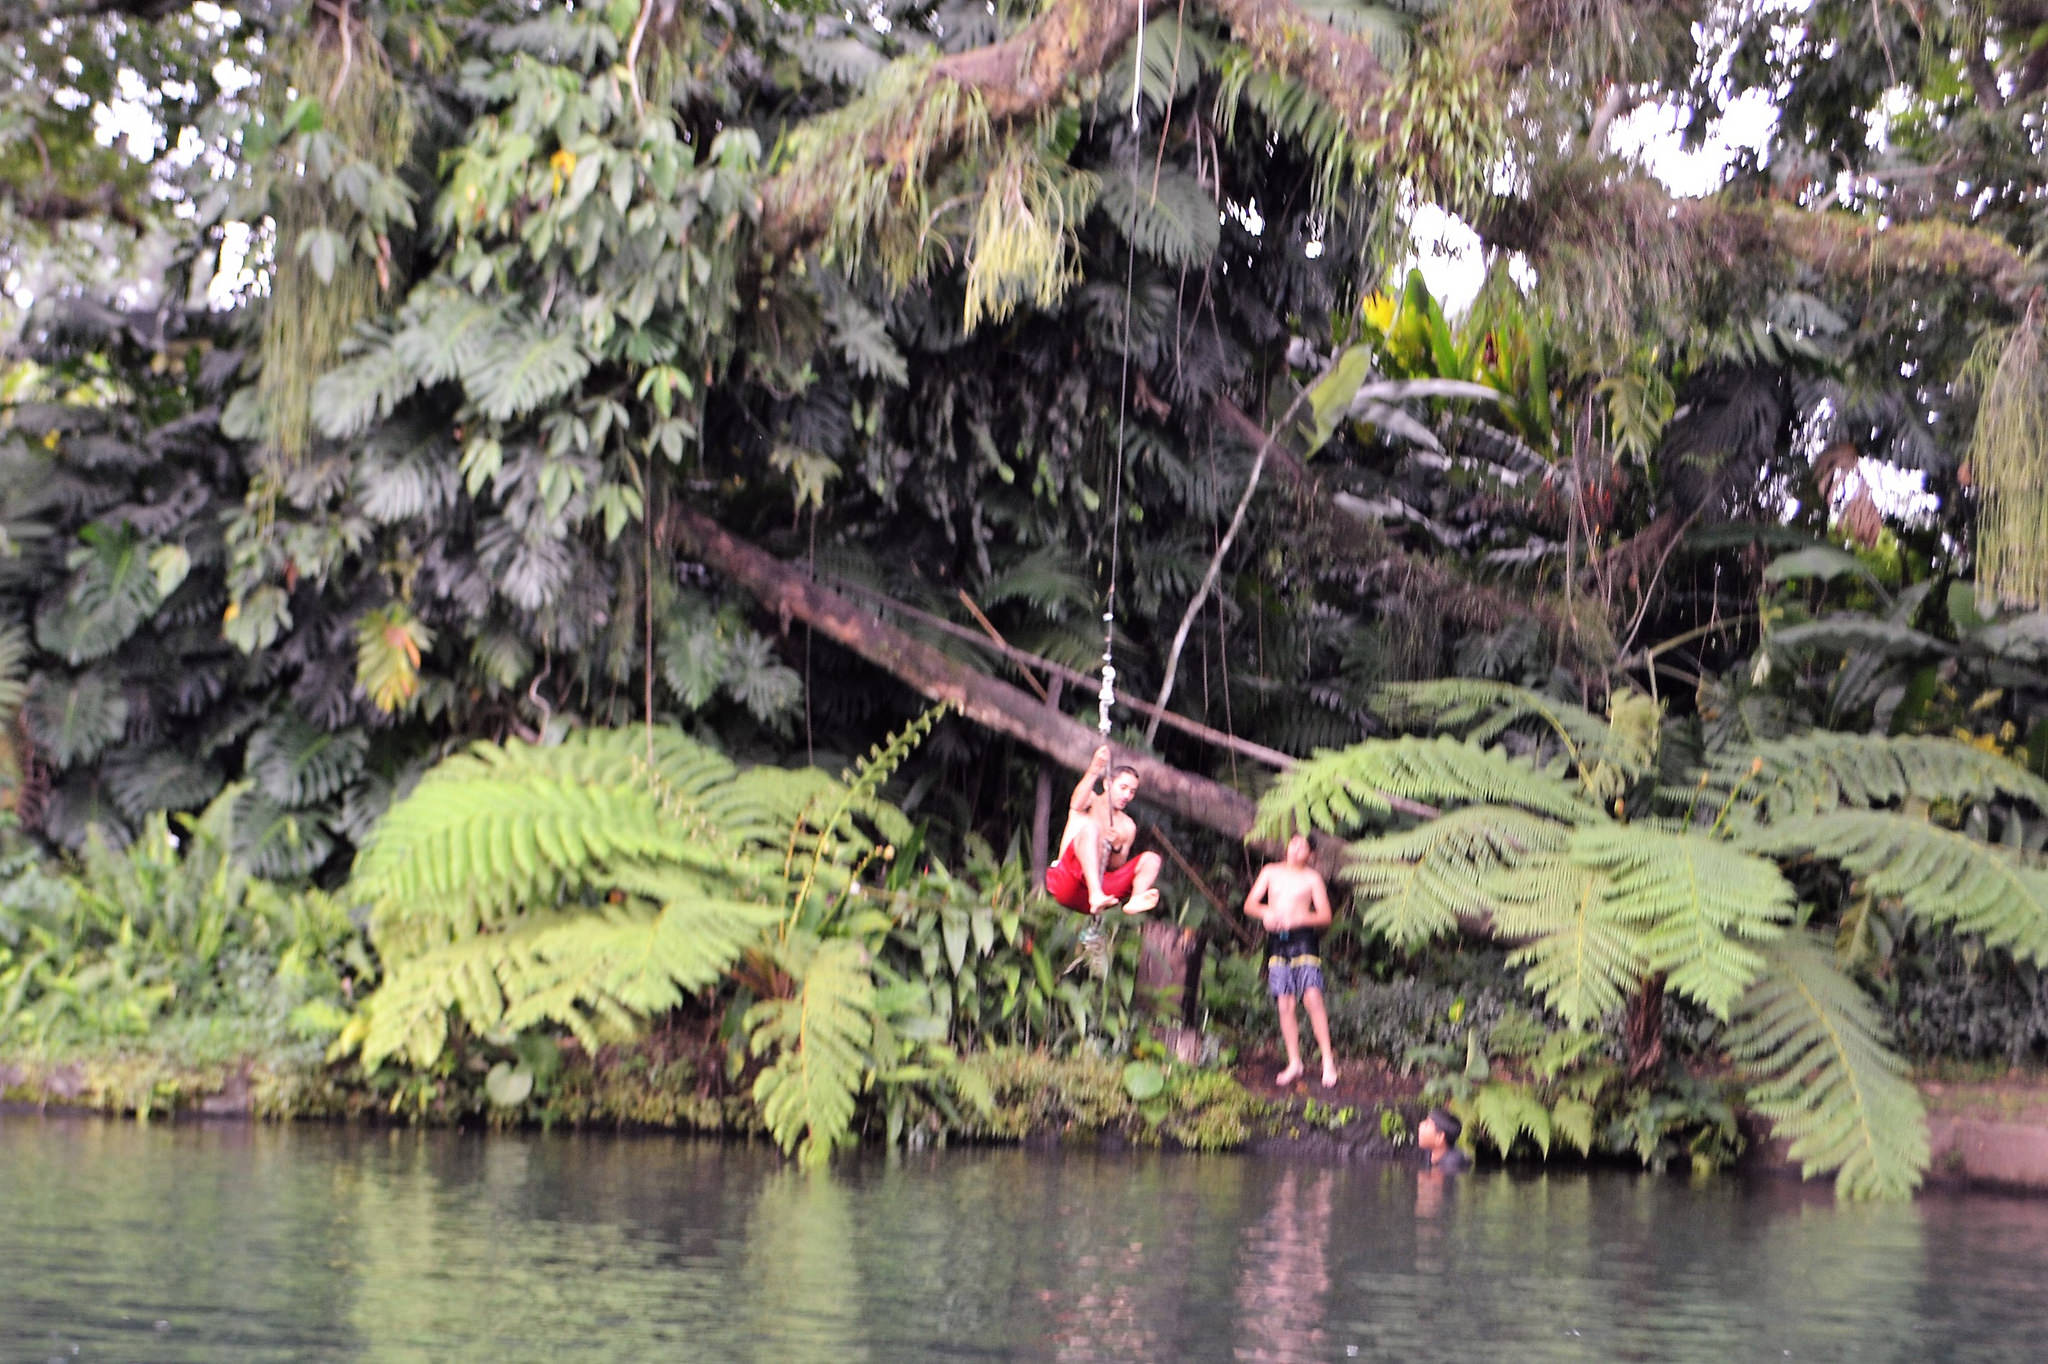 tarzan swing, nature and outdoors adventures